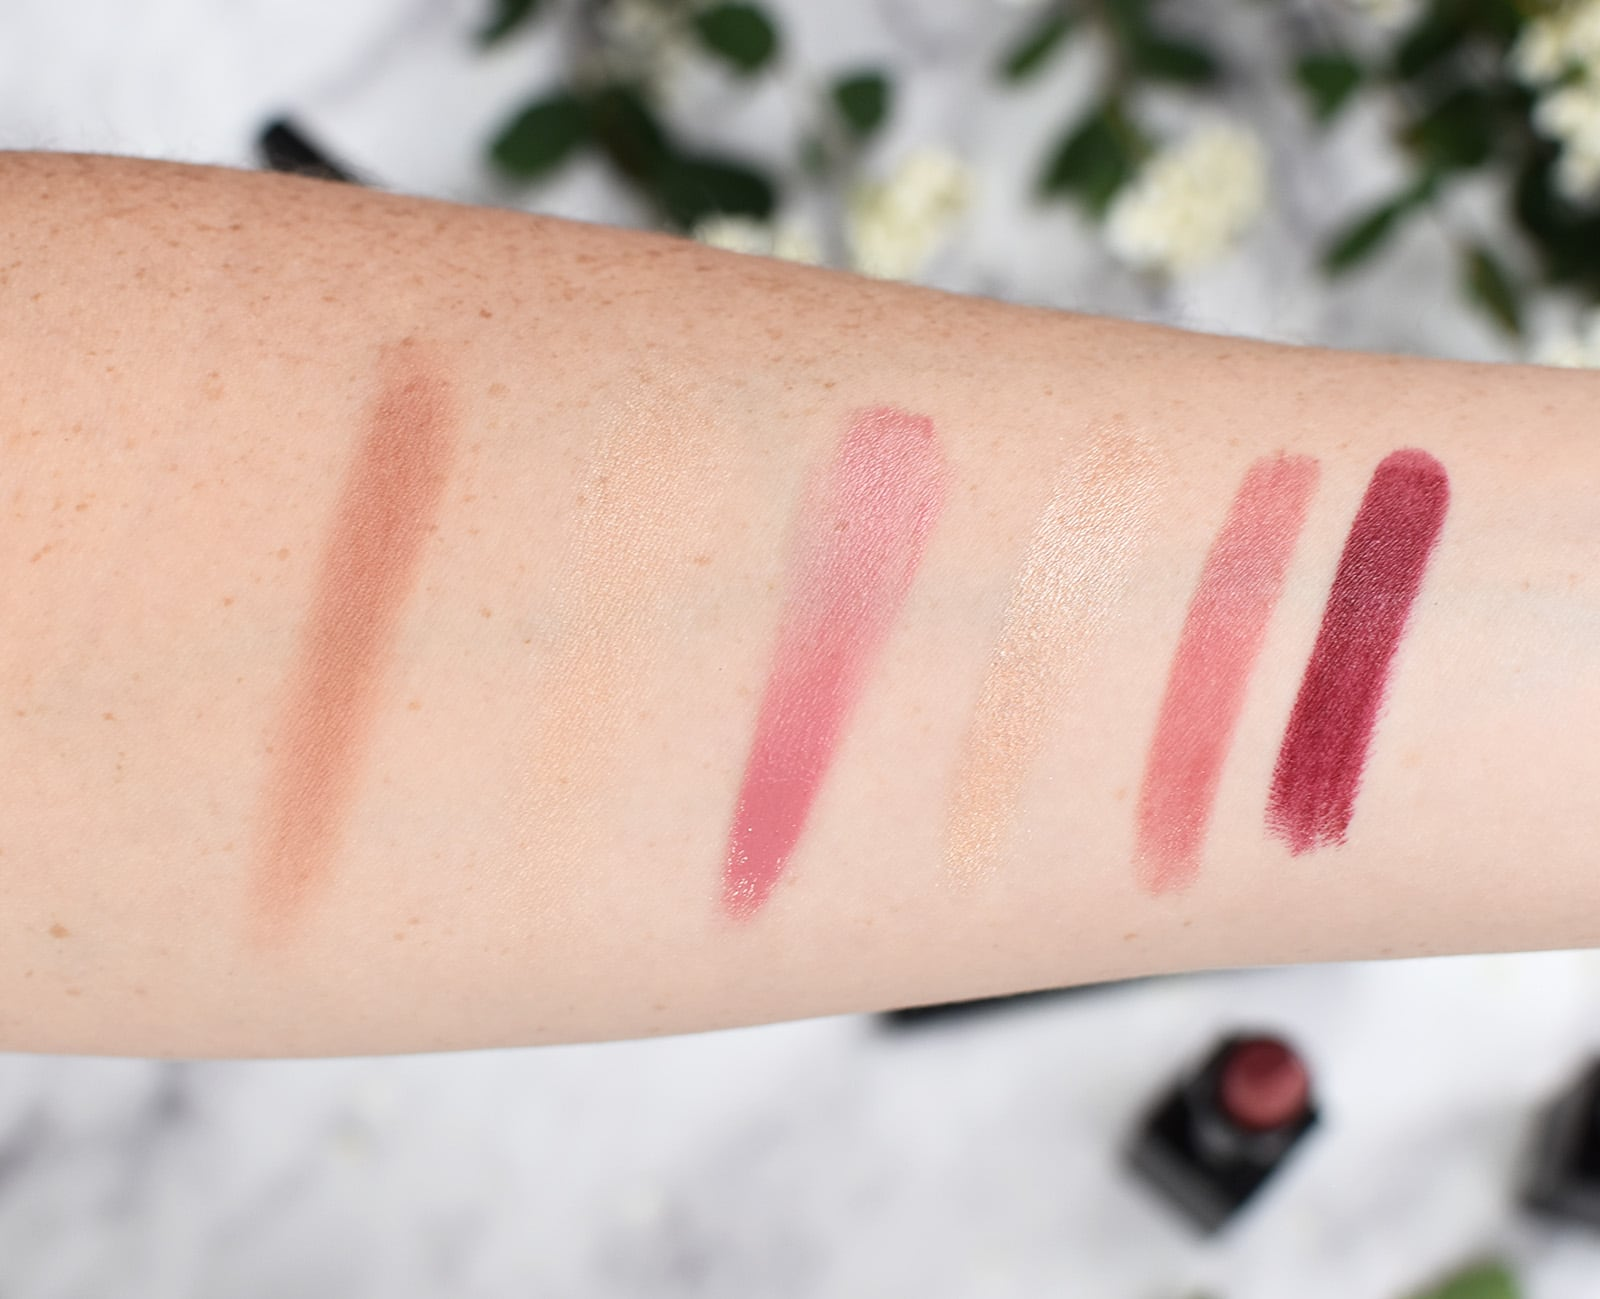 Kosas Alter Ego Modern Romance Set review and swatches | oliveandivyblog.com